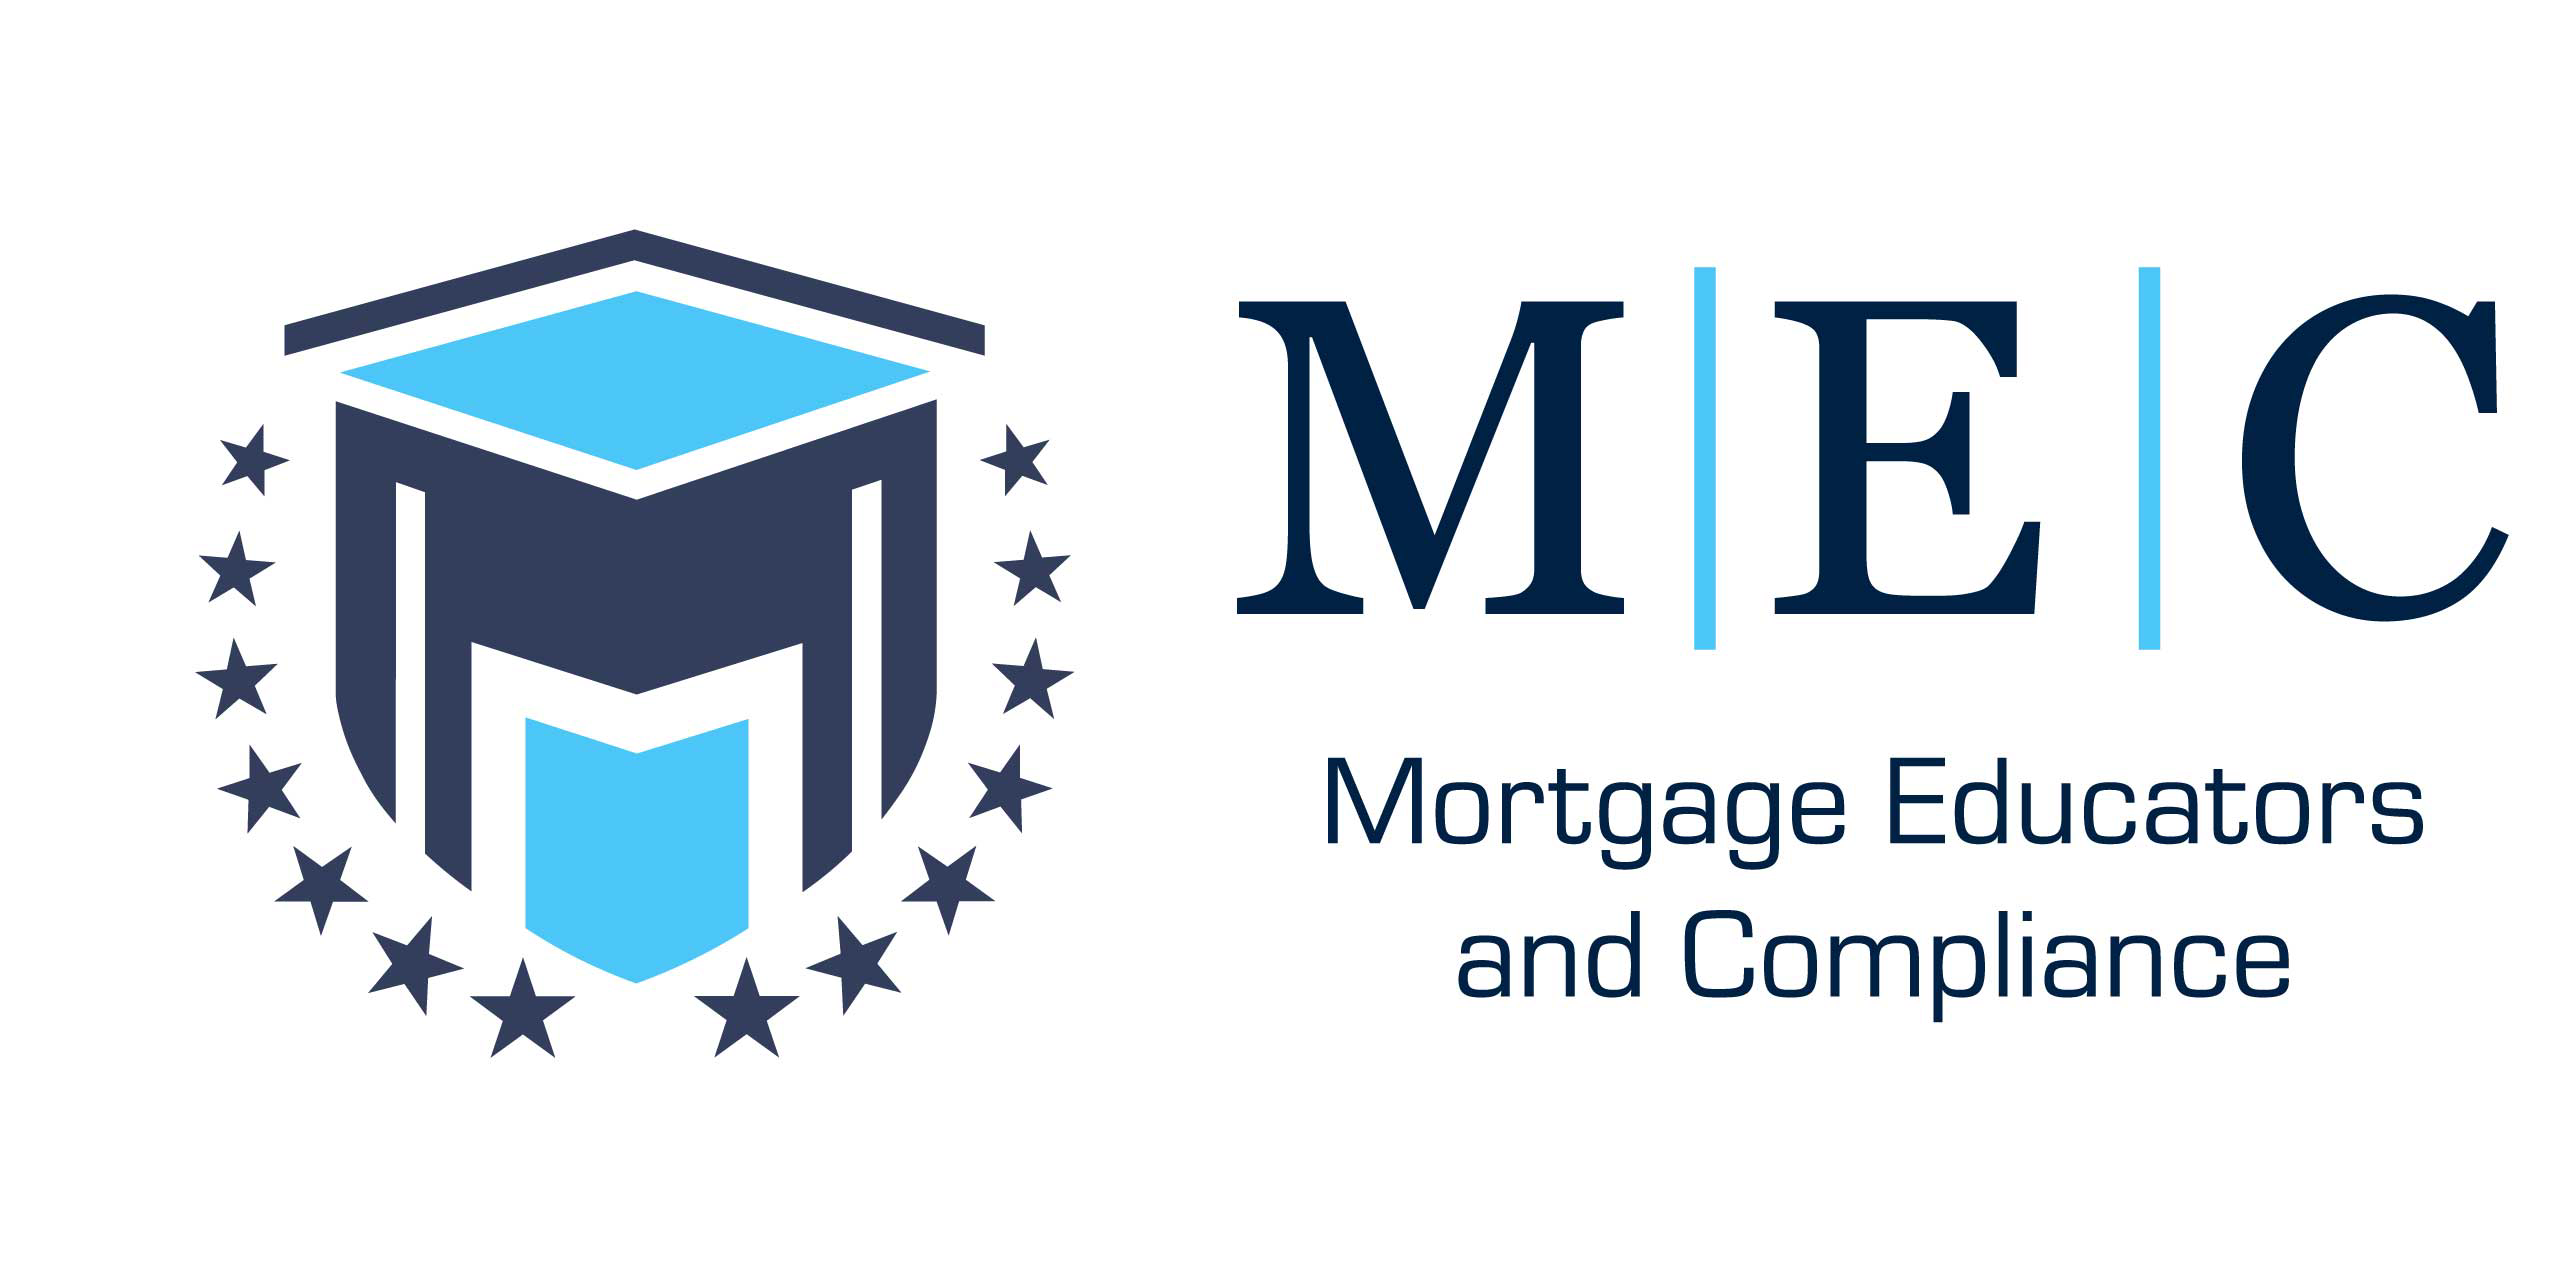 Mortgage Educators and Compliance